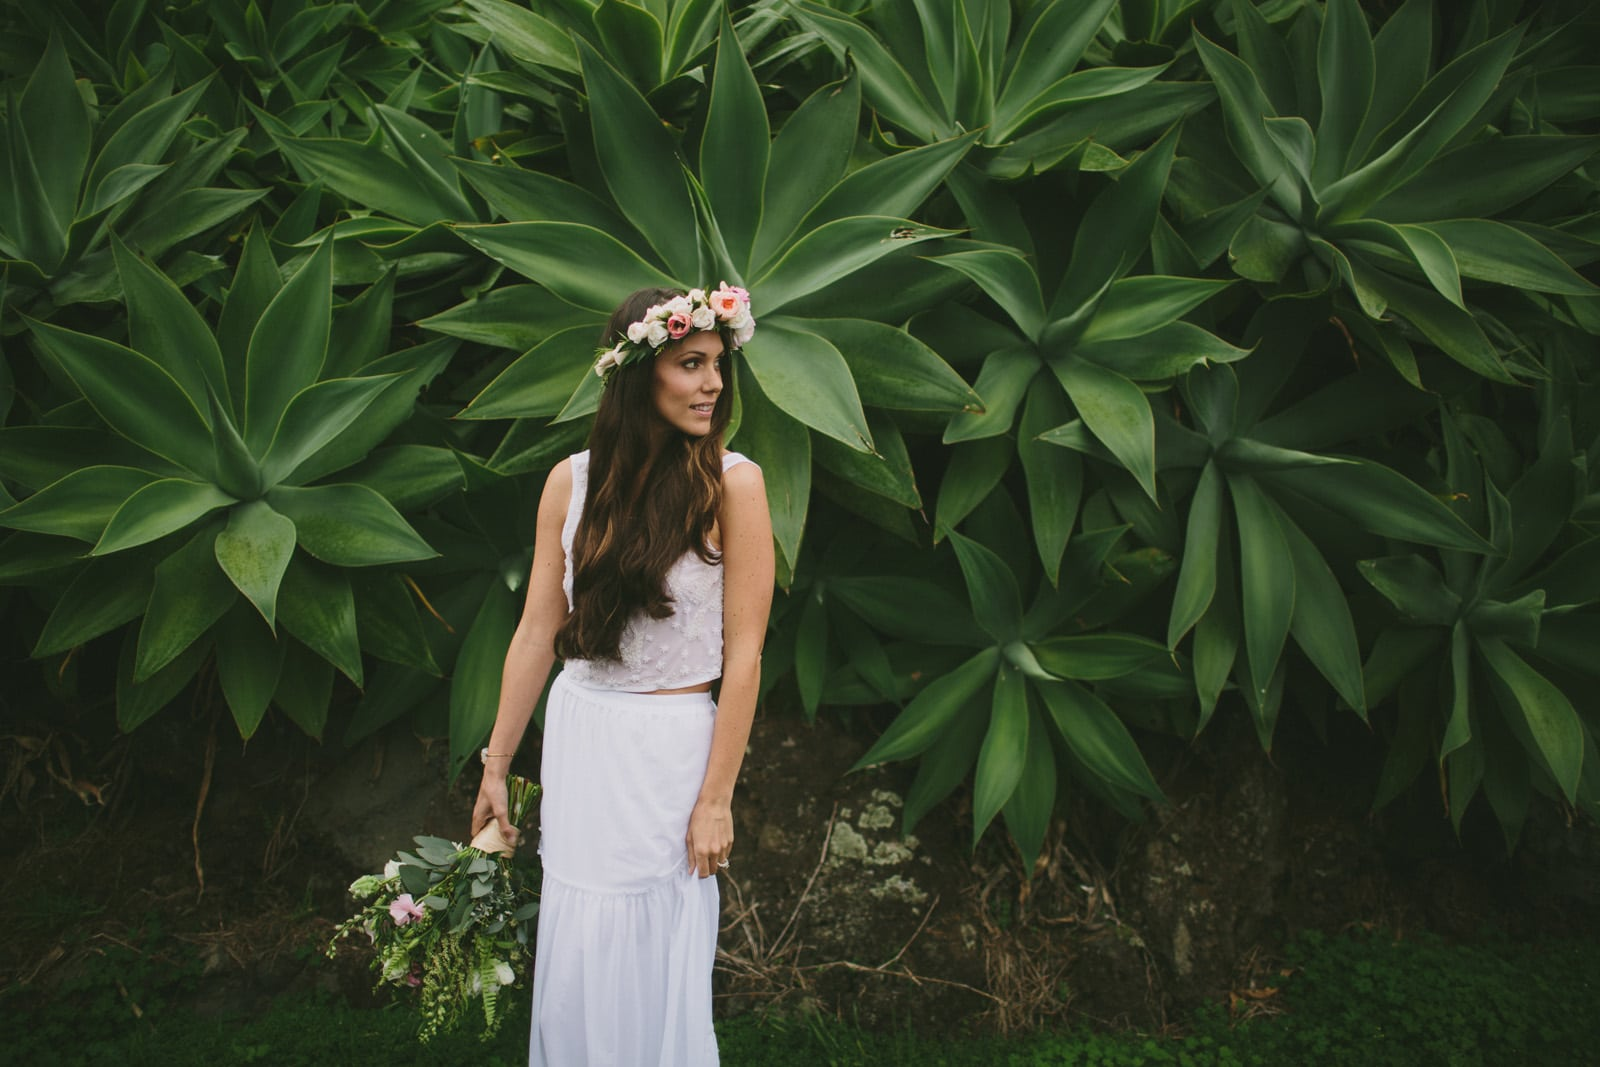 Maui_Wedding_Wailea_Kapalua_Hawaii_Photographer_027